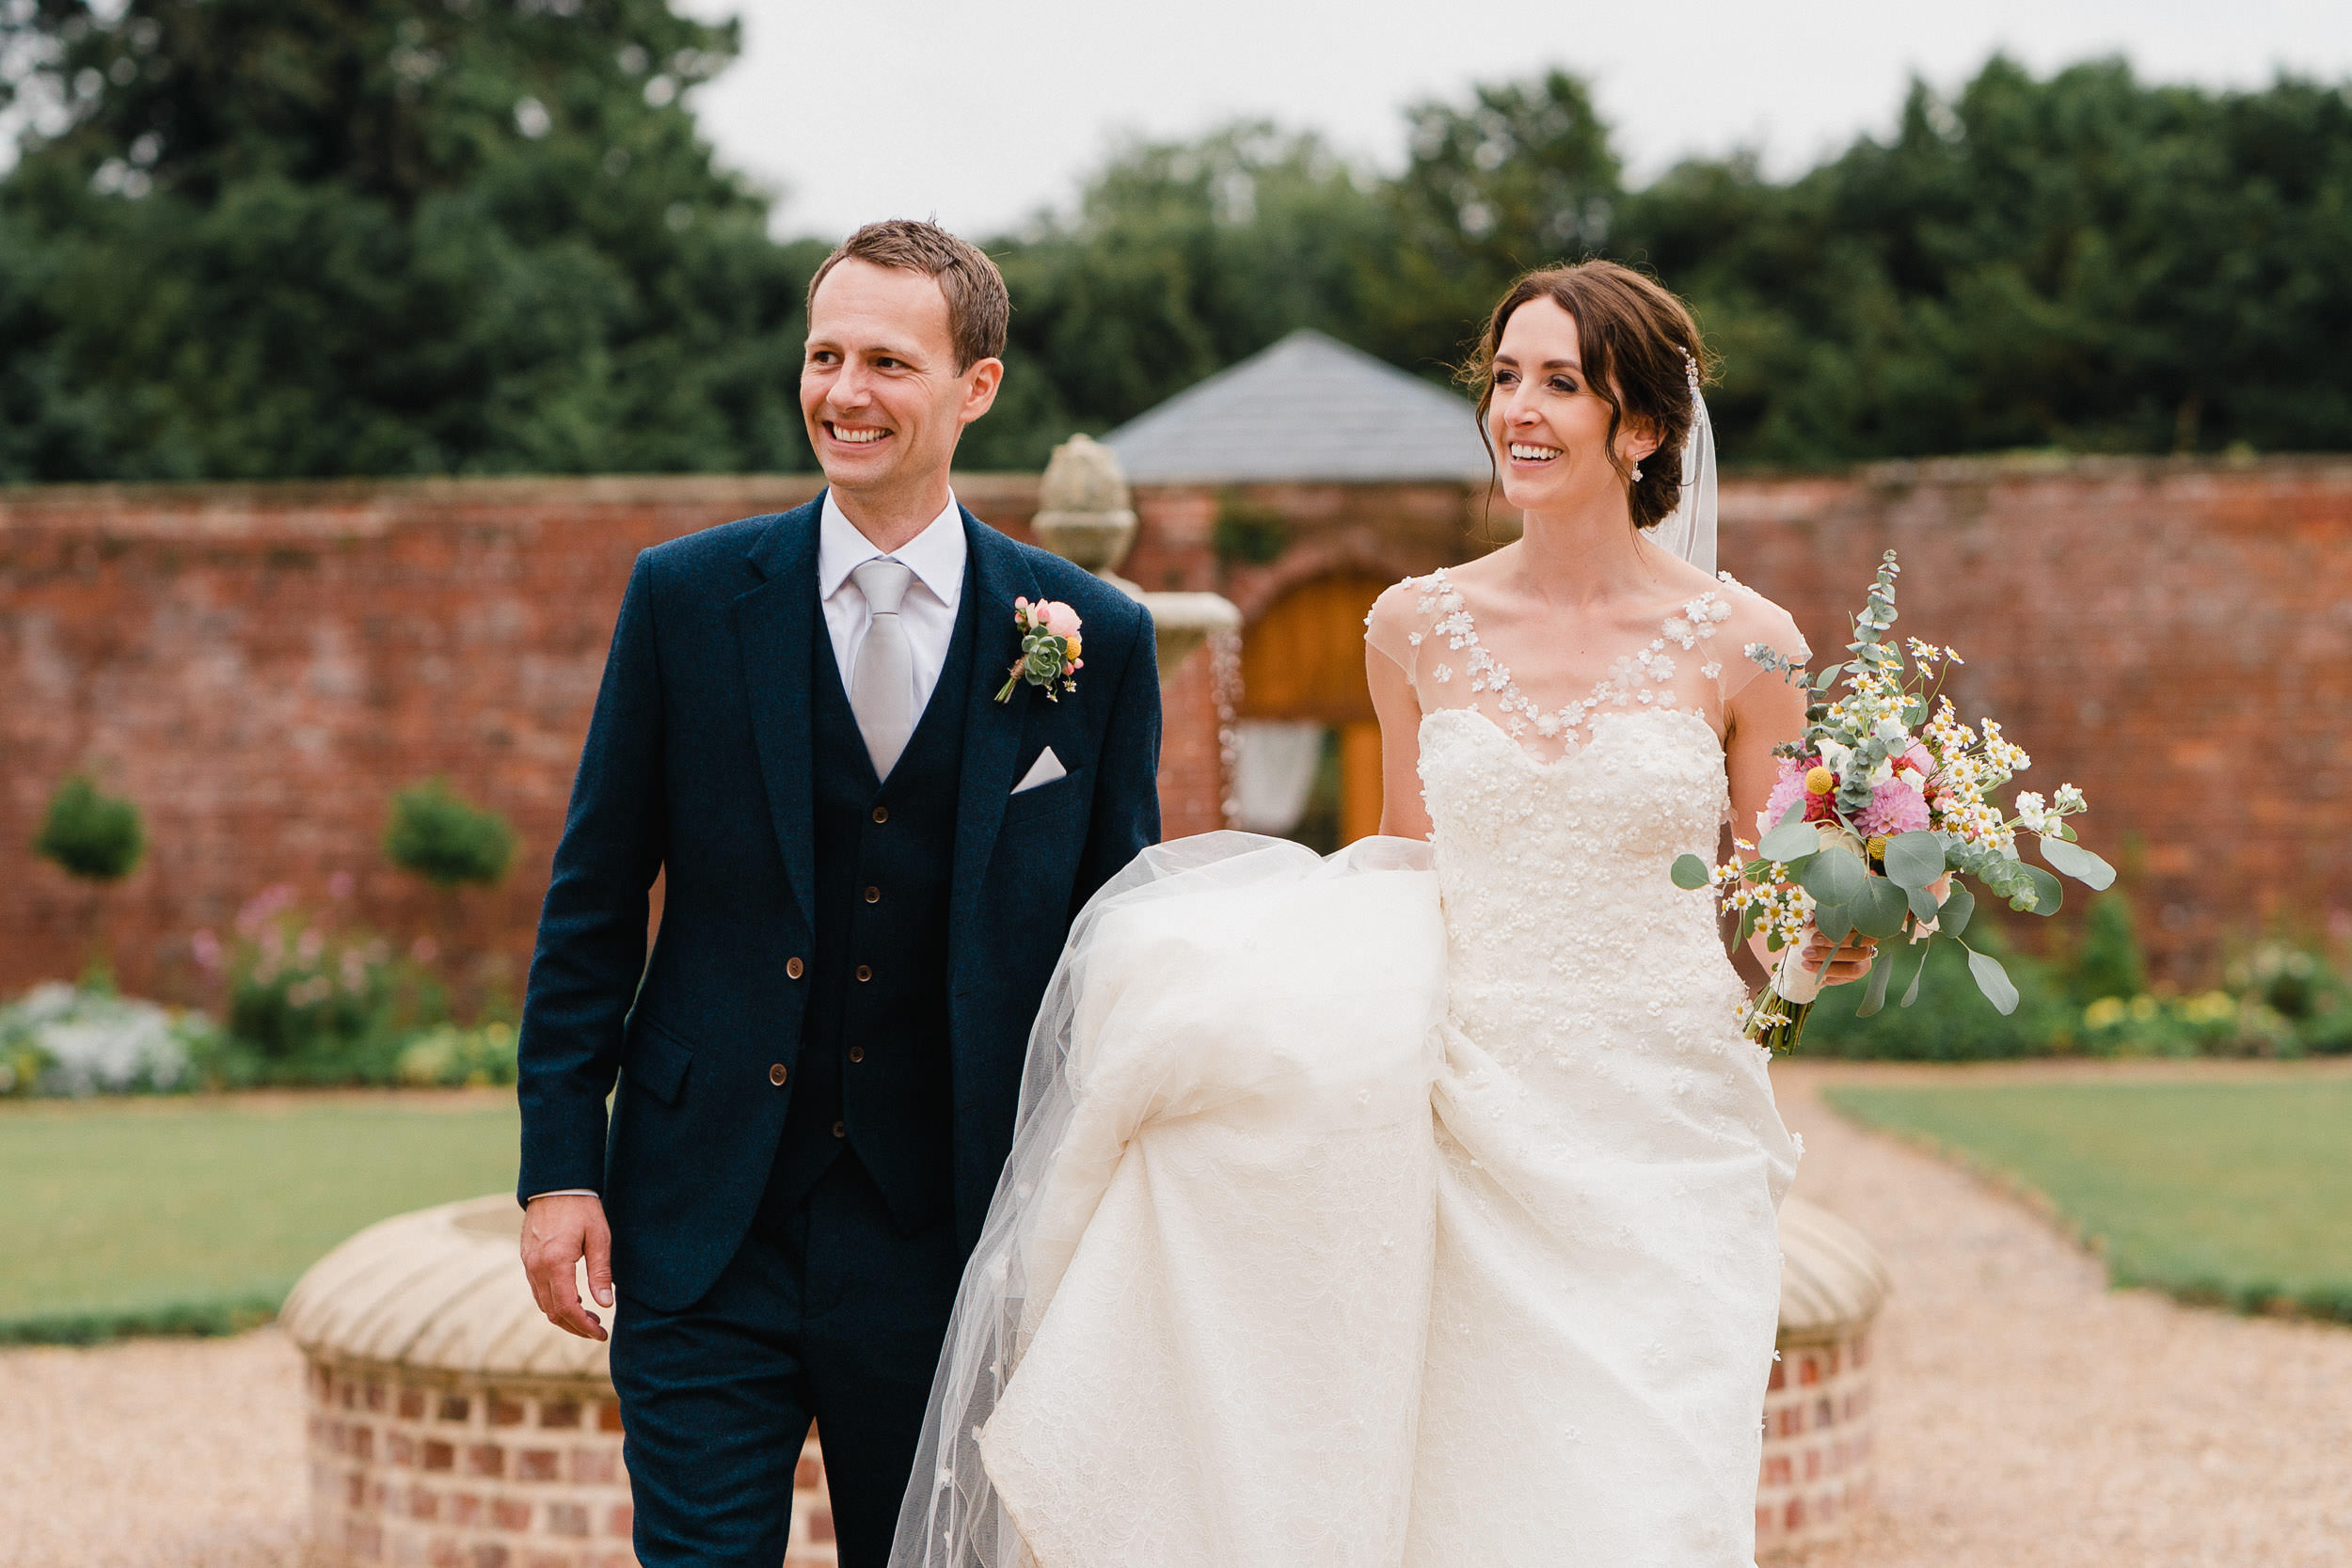 Orchardleigh Estate Wedding - Bride and Groom in the Walled Garden